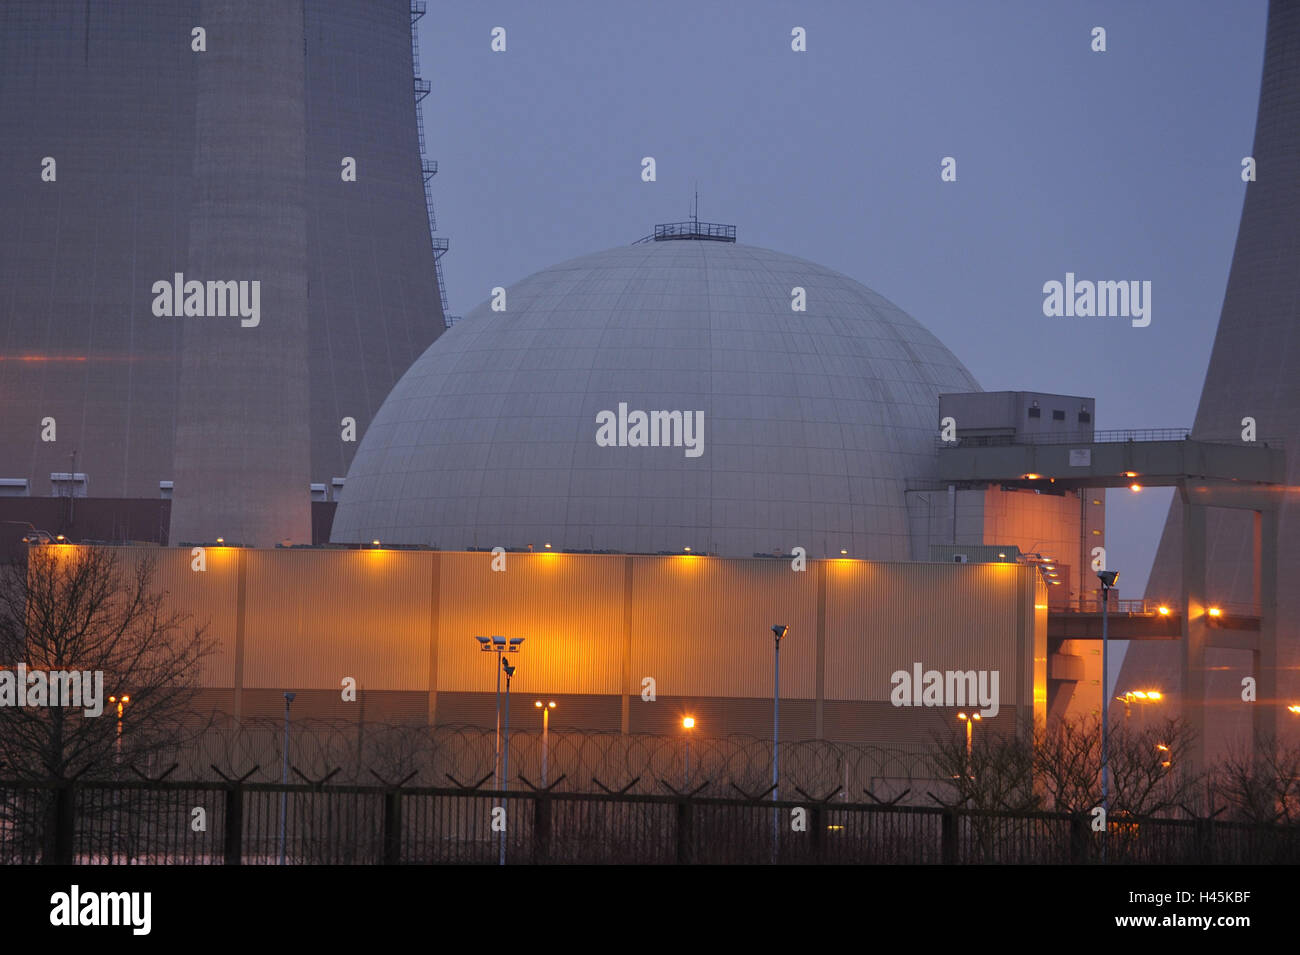 Germany, Bavaria, field Grafenhein, nuclear power plant, reactor building, fence, night, lighting, Lower Franconia, - Stock Image